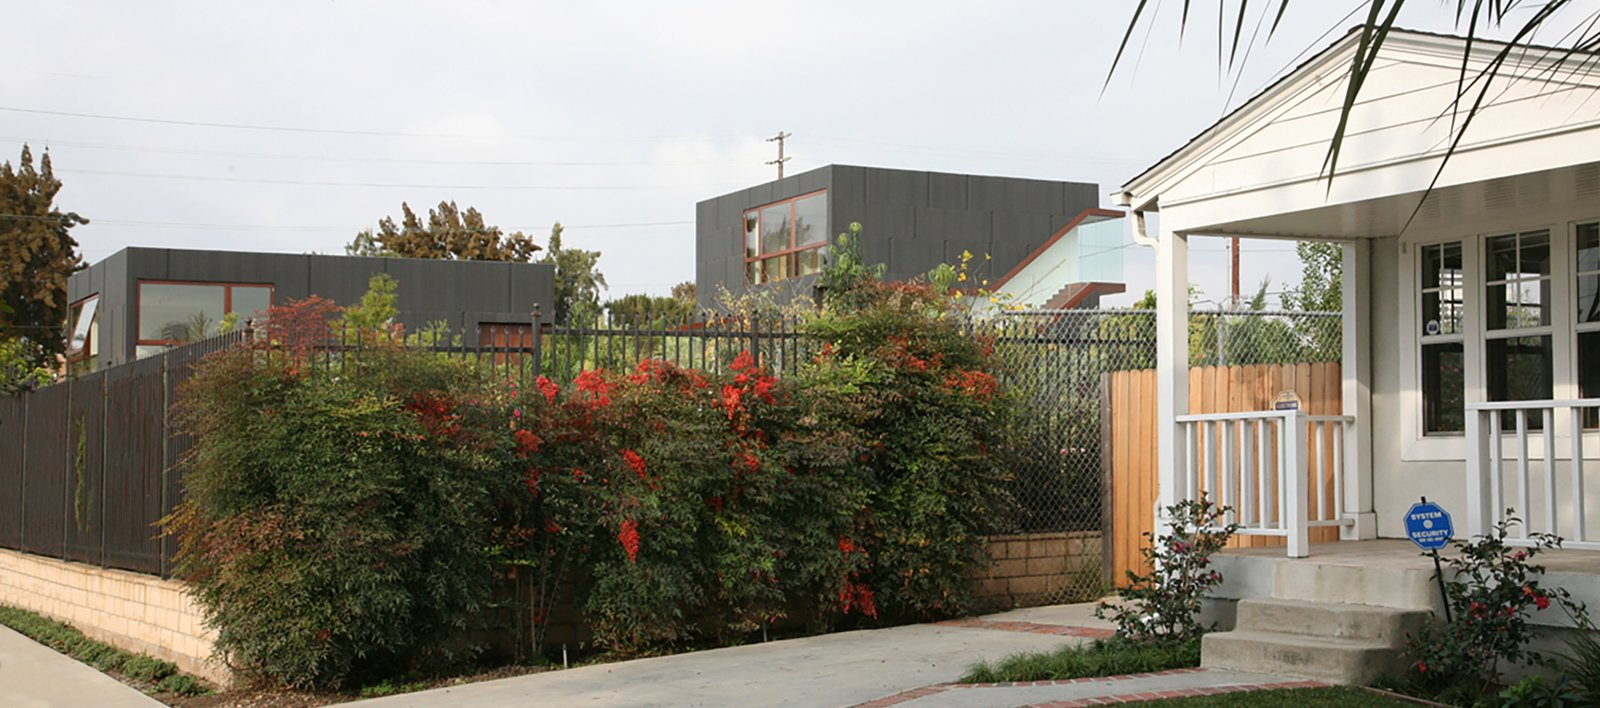 MüSh Residence by Liang Architecture Bureau+